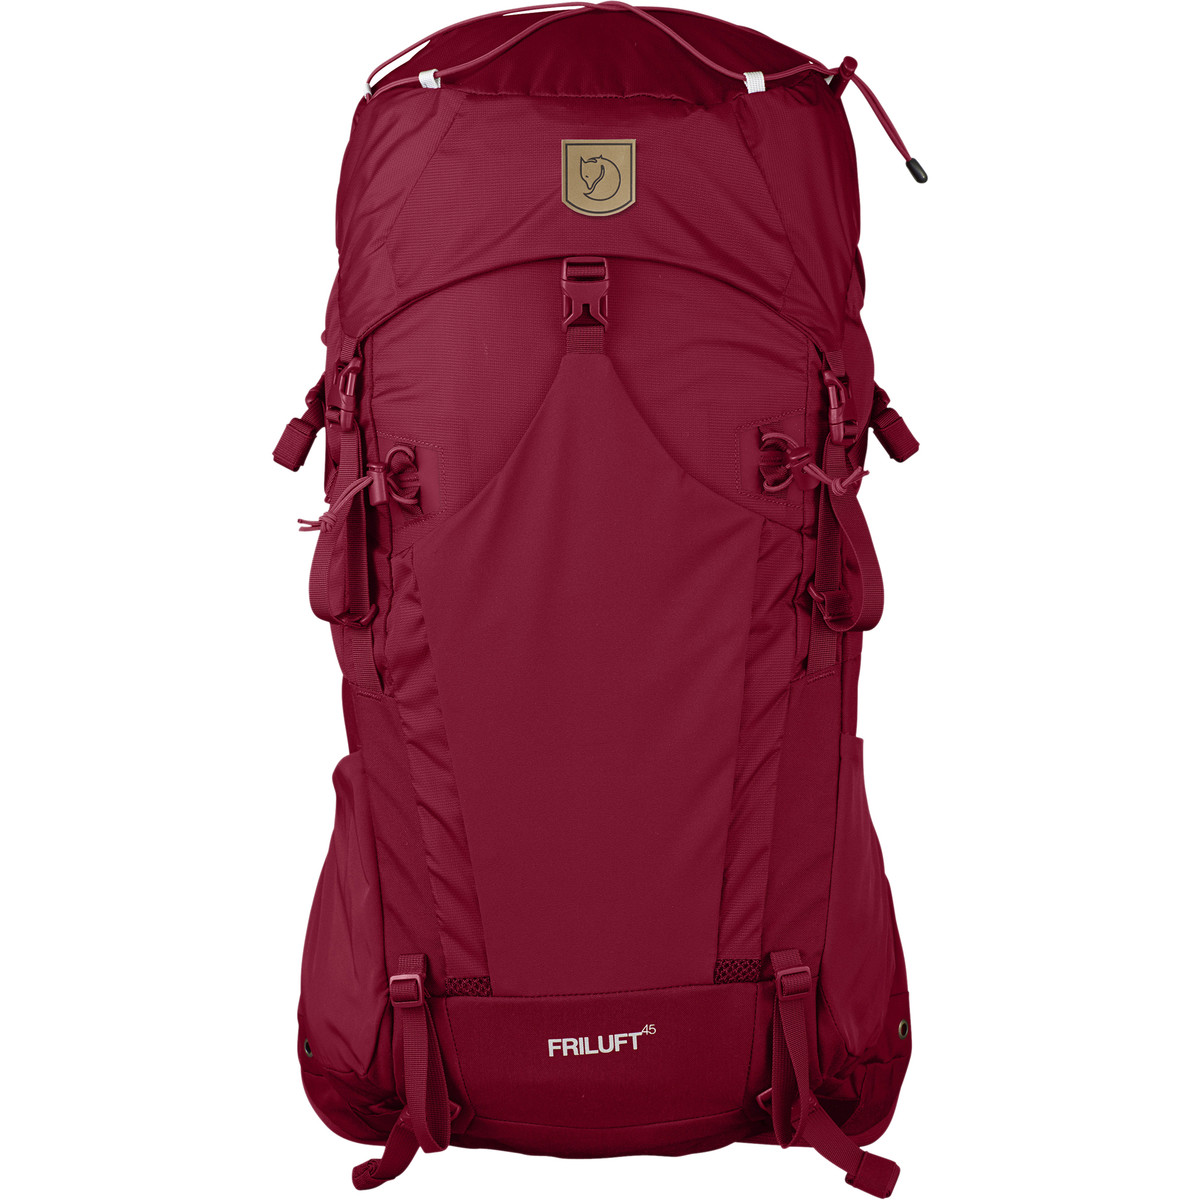 photo: Fjallraven Friluft 45 Pack overnight pack (2,000 - 2,999 cu in)